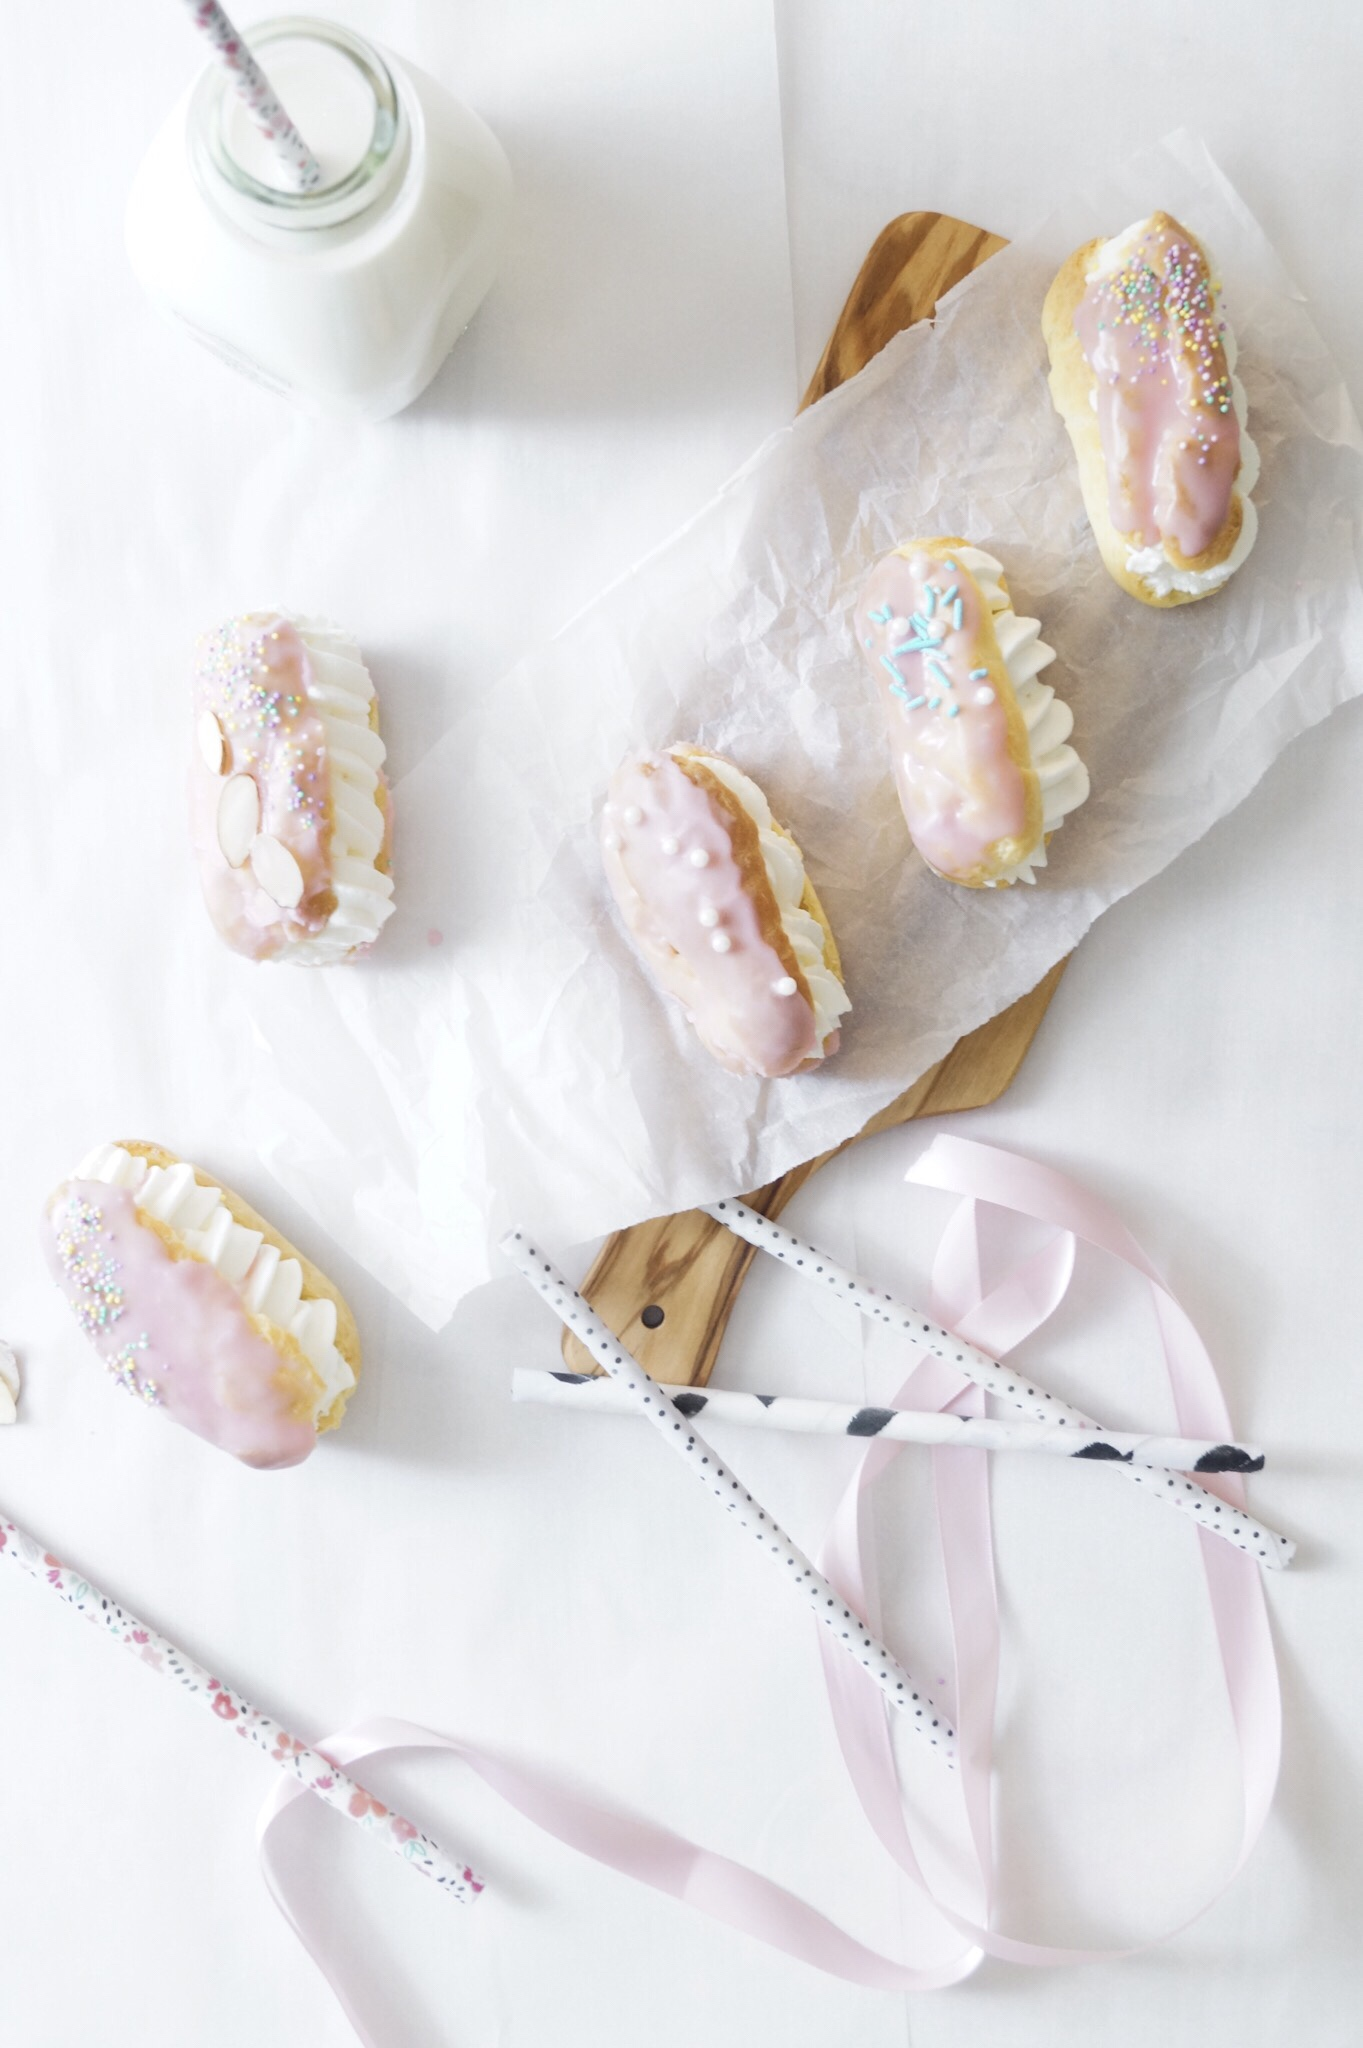 mini eclairs for party, mini desserts for baby shower, mini desserts for party, mini desserts cute, girls birthday party ideas, birthday cake ideas, non cake cake ideas, baby shower ideas, baby shower ideas for girls, mini dessert ideas, eclairs recipe easy,